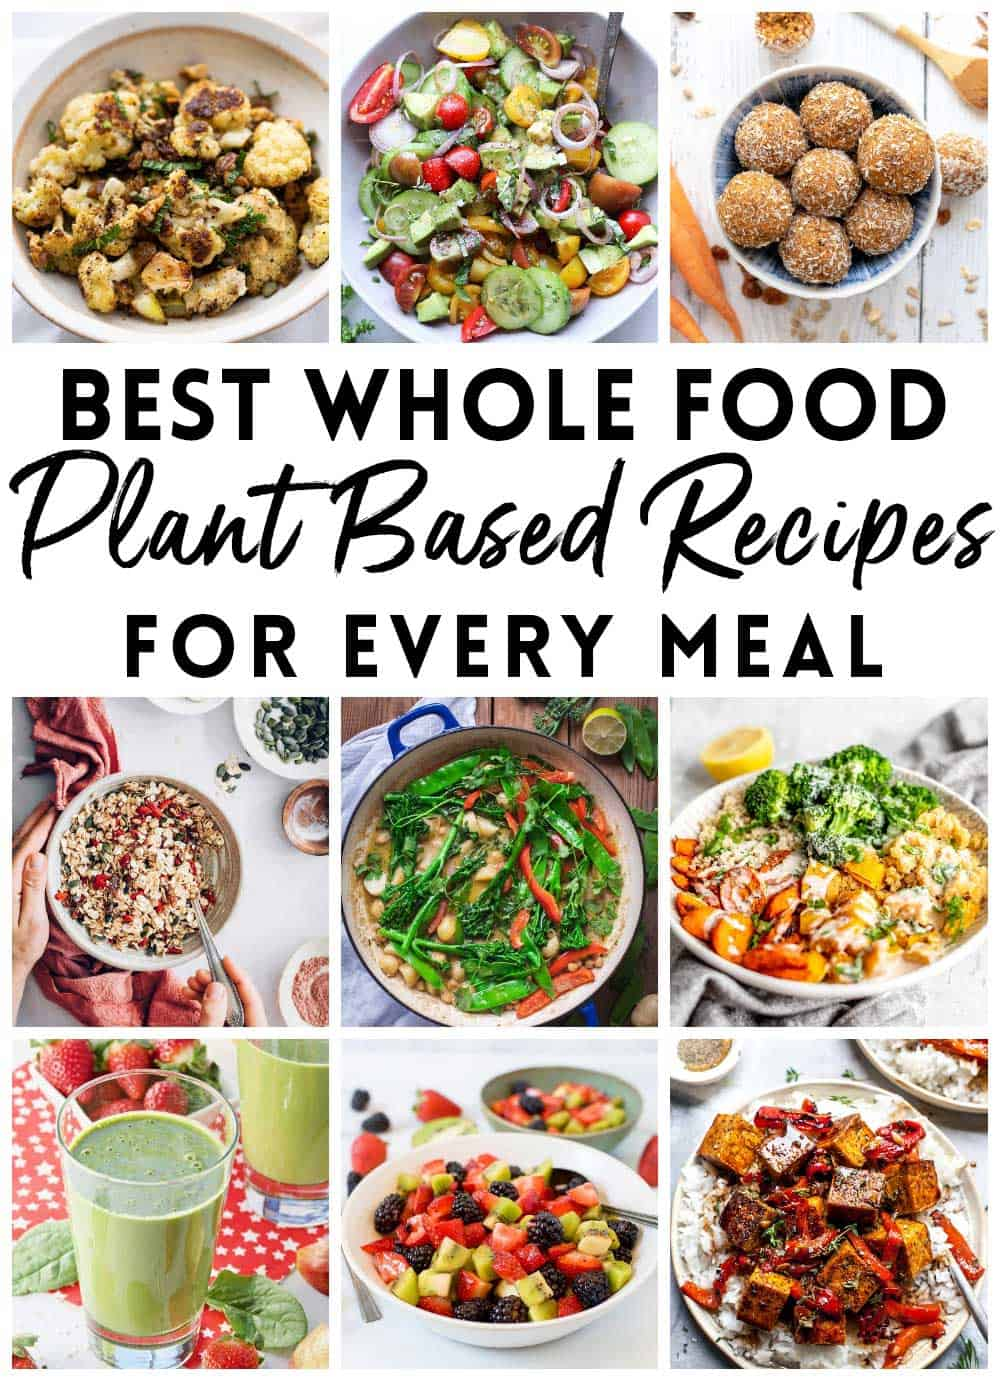 photo collage of whole food plant based diet recipes